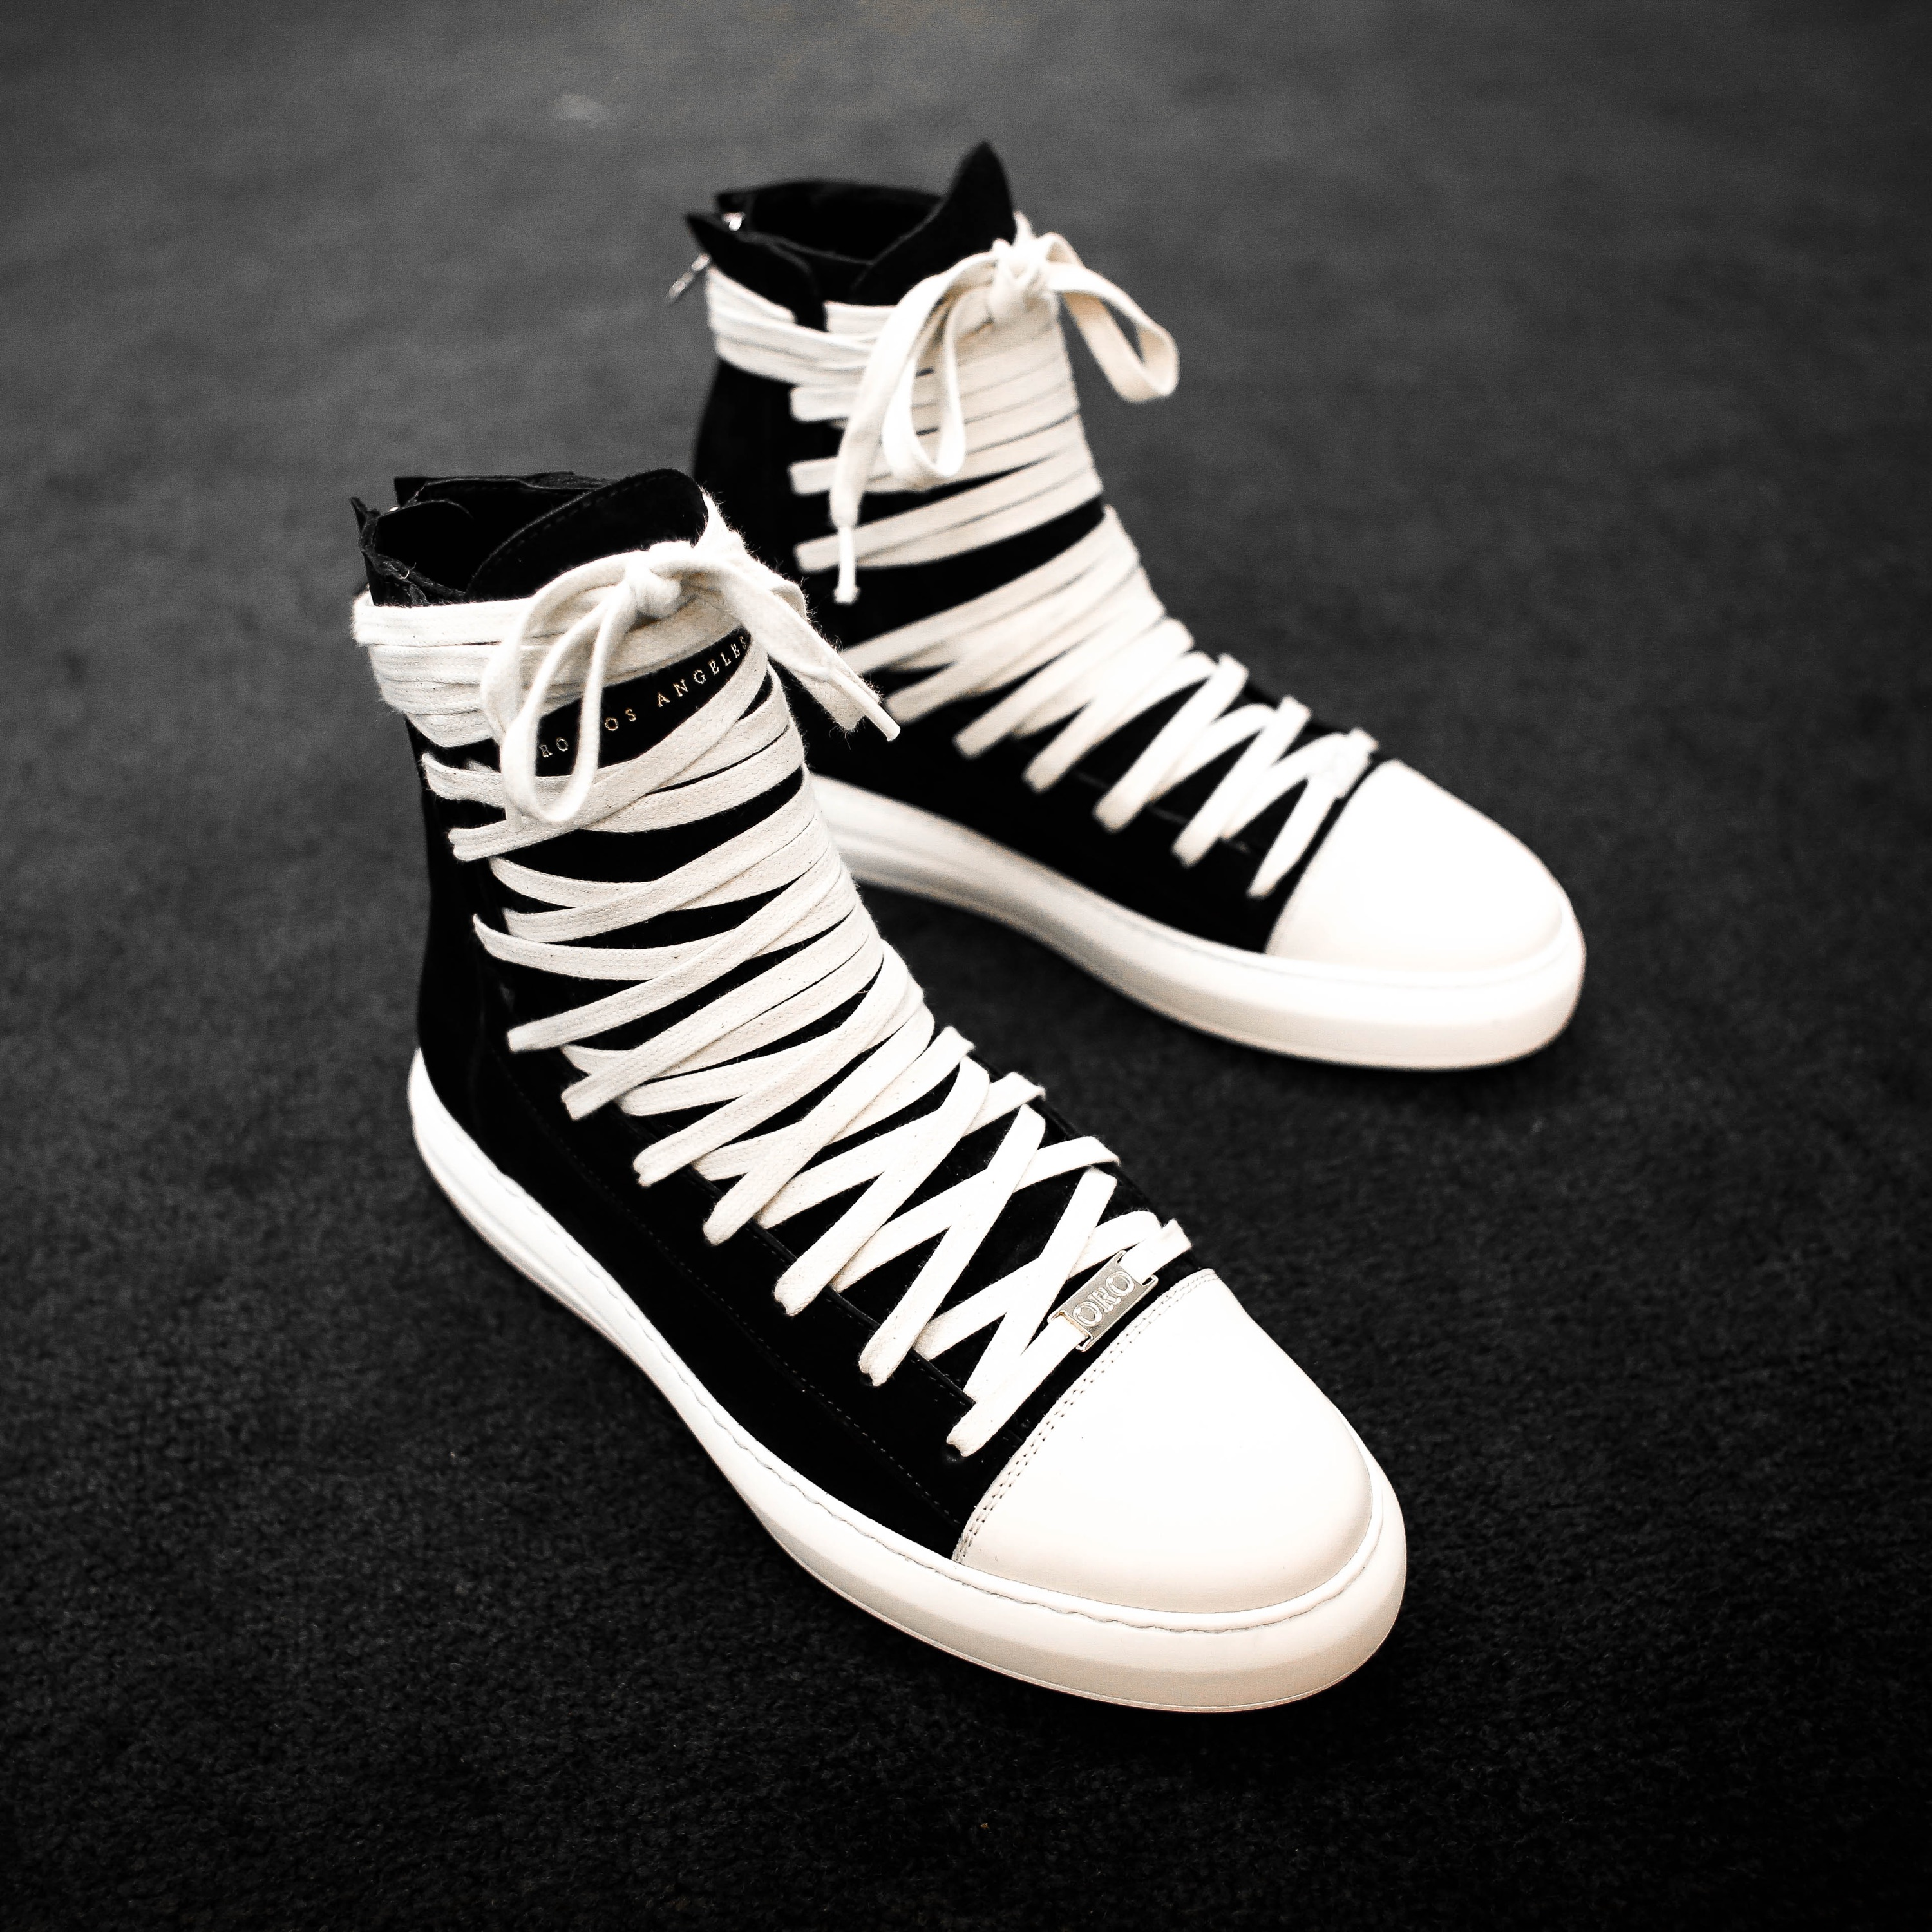 ORO Los Angeles Launches New Sneakers